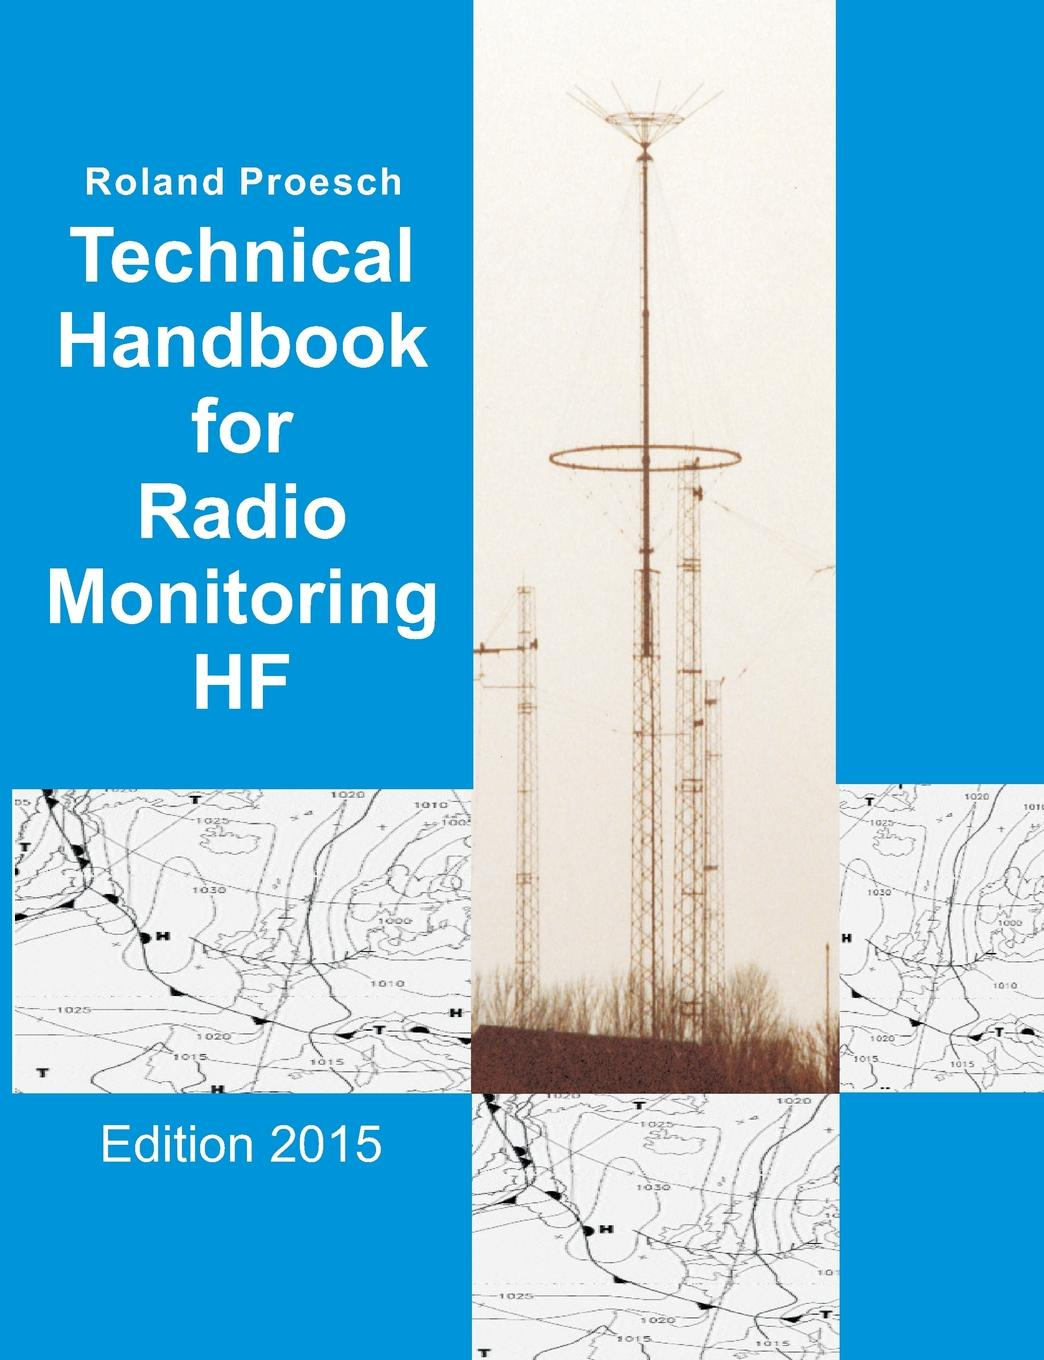 Roland Proesch Technical Handbook for Radio Monitoring HF fm radio language and its effect on the young listeners